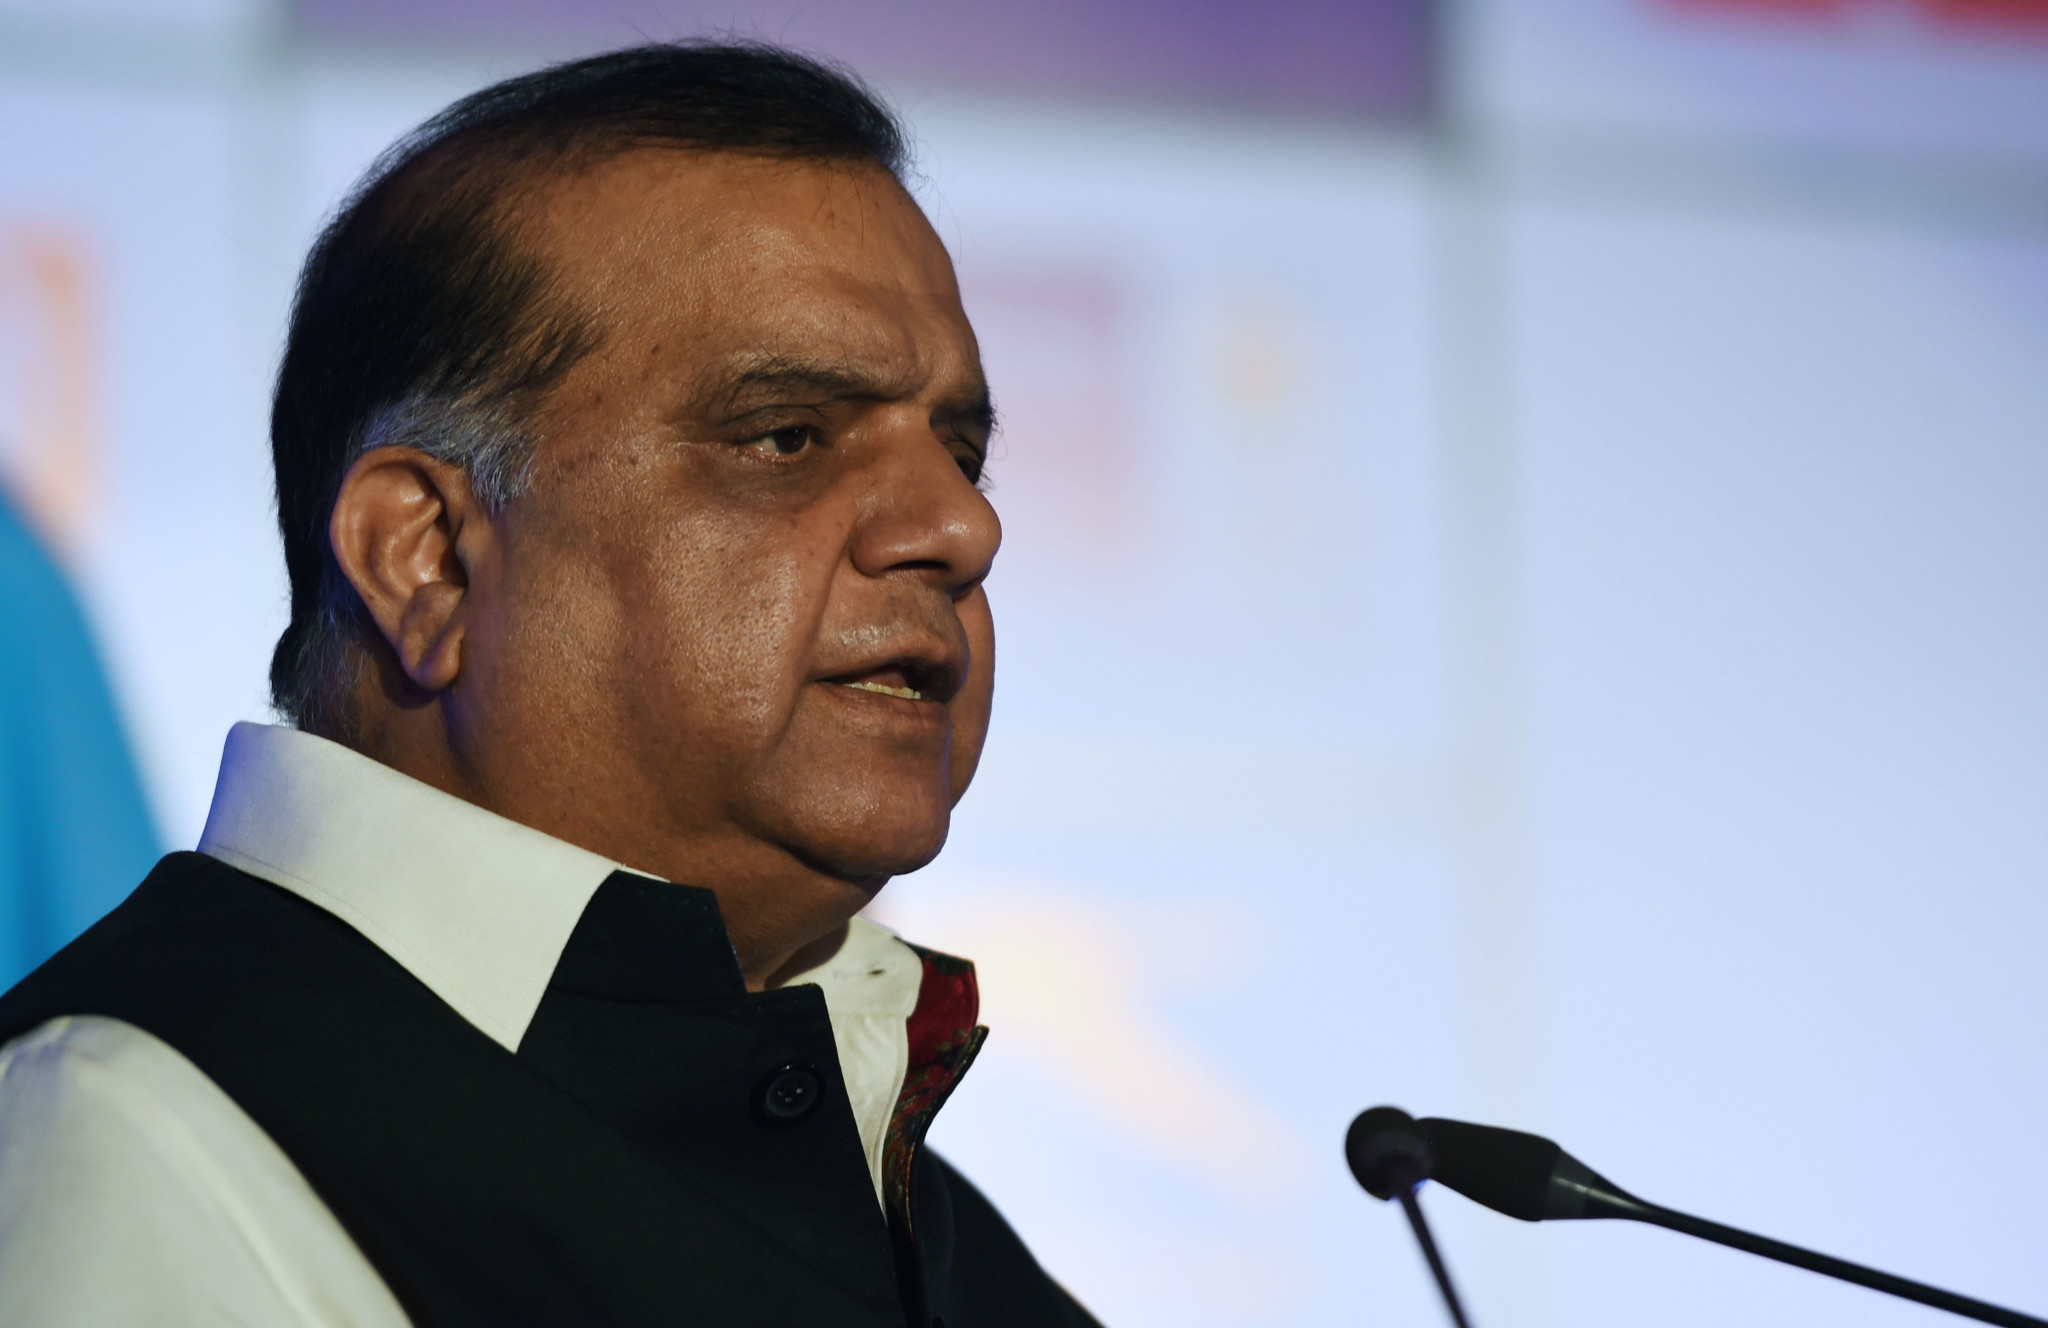 Indian Olympic Association President Narinder Batra has dismissed the Commonwealth Games a